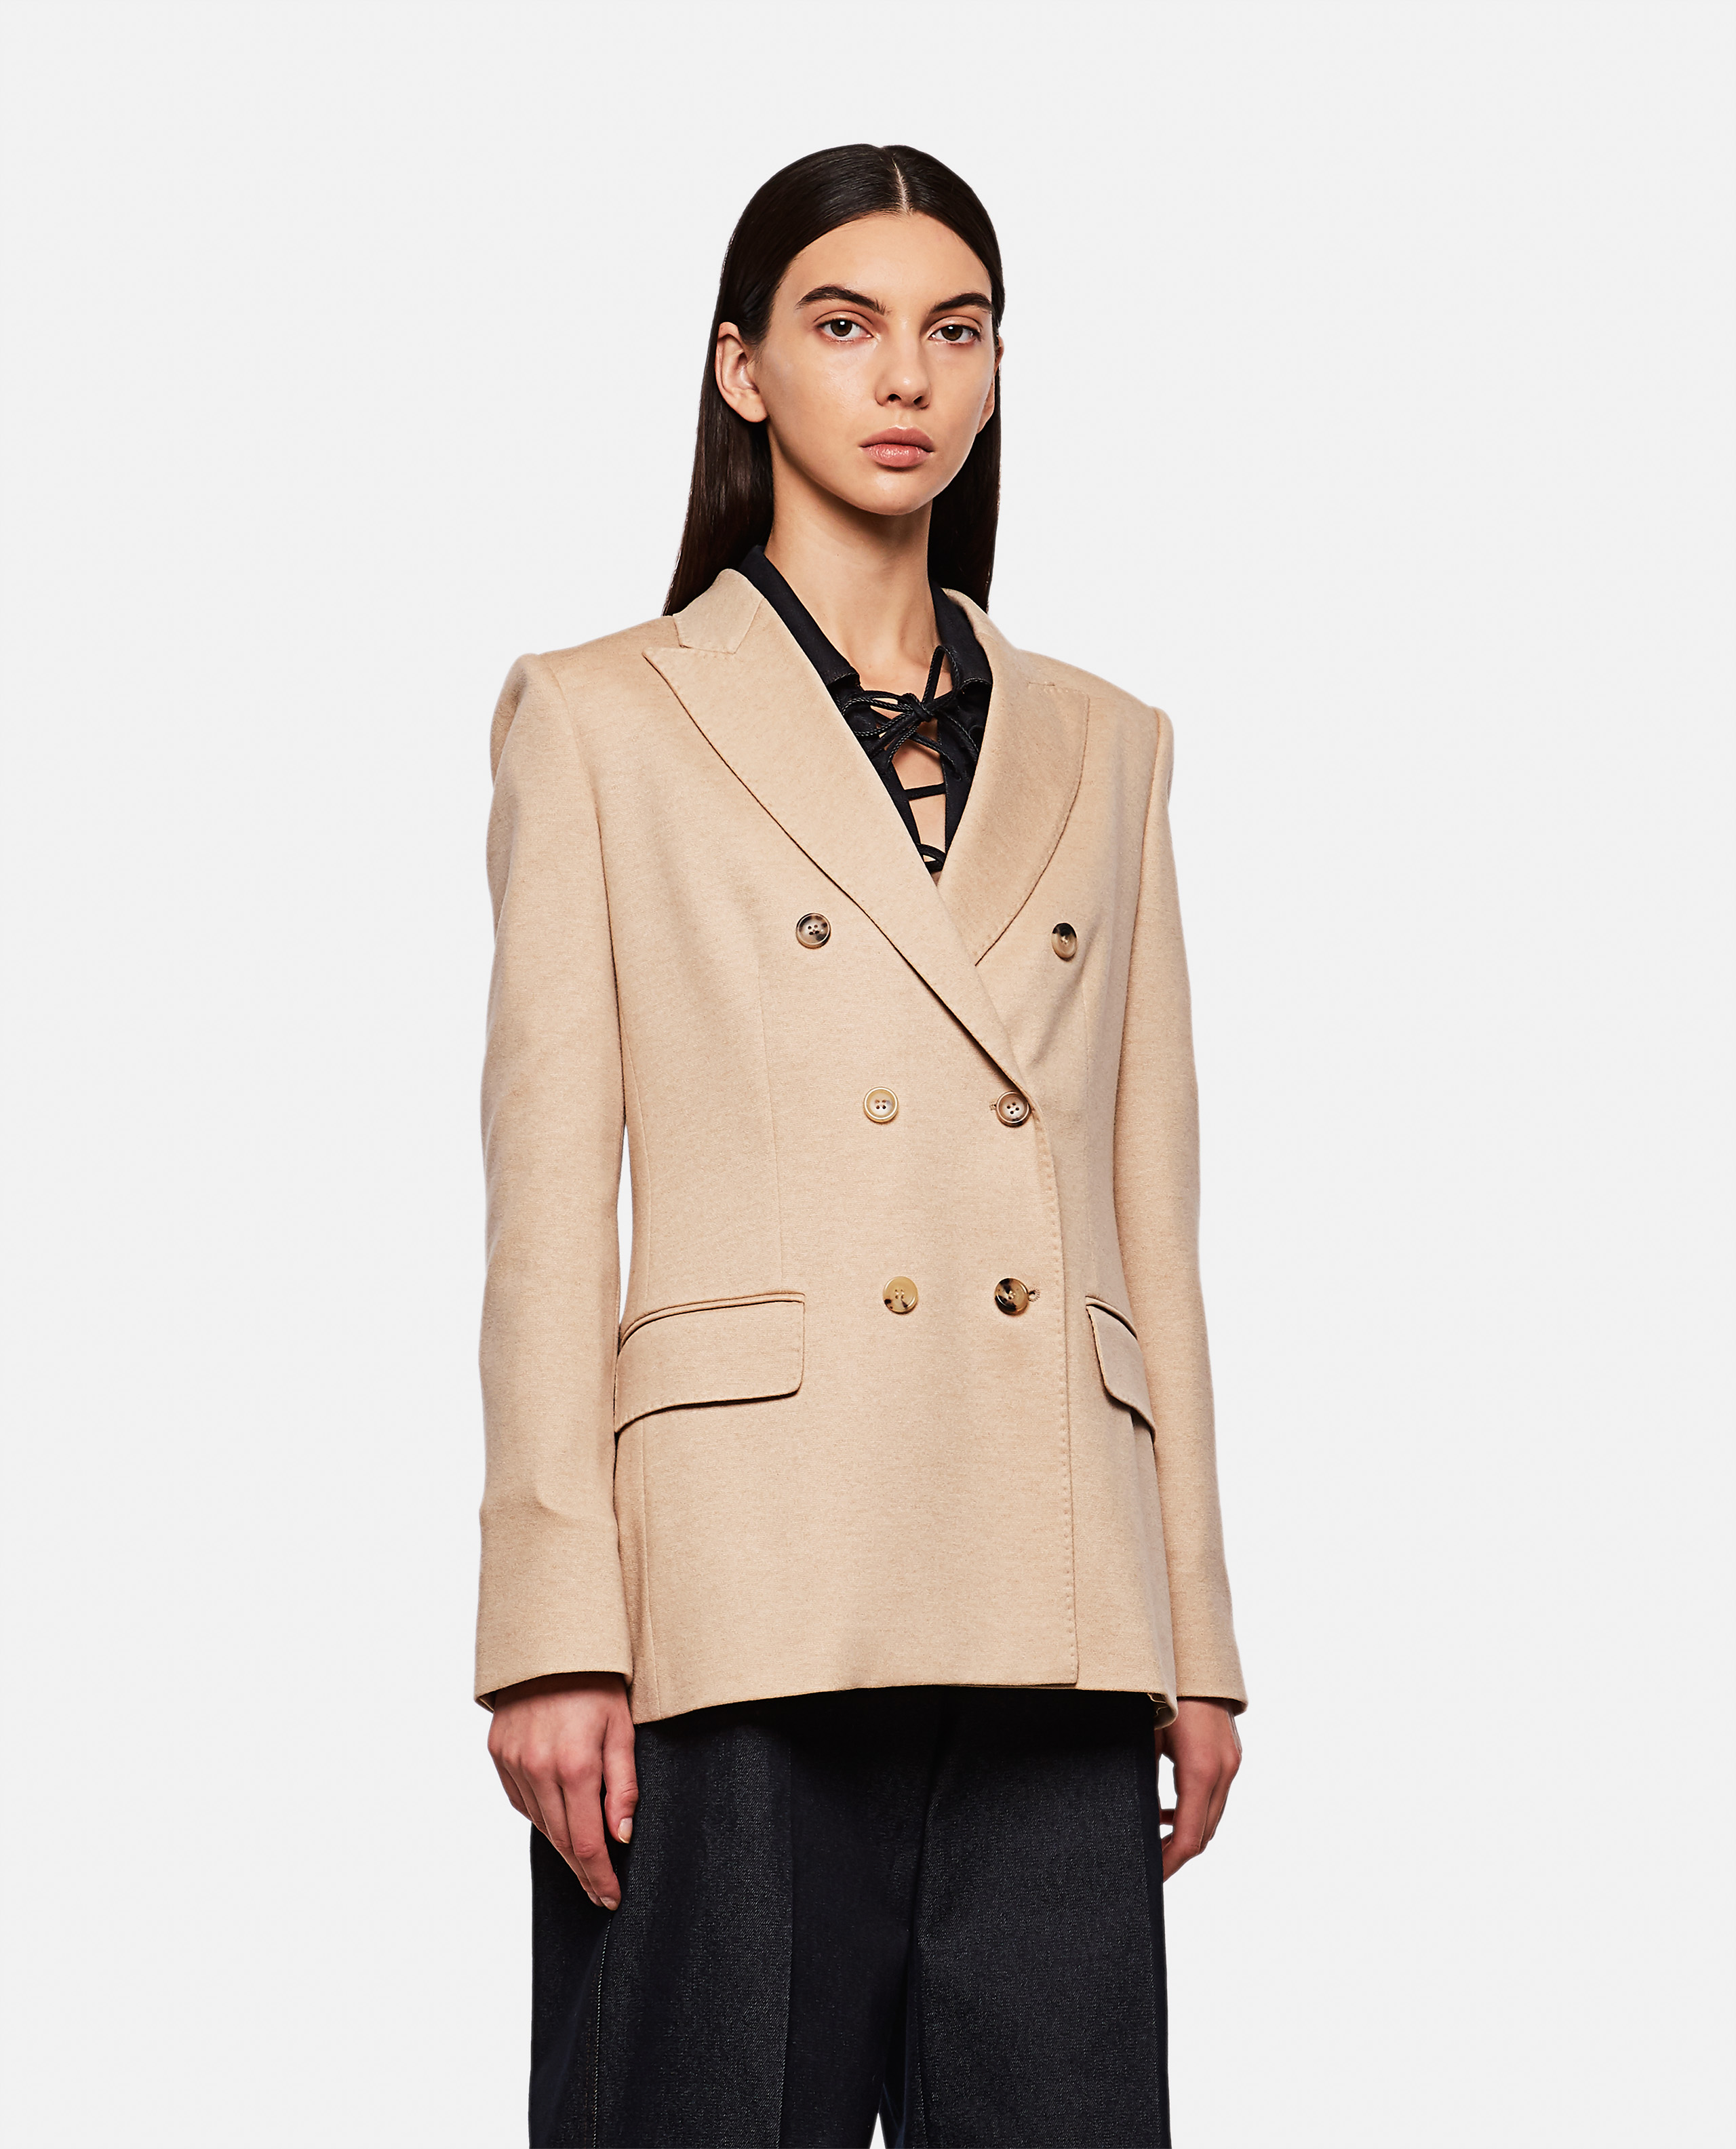 Max Mara MAX MARA CAMEL-COLORED WOOL BLAZER